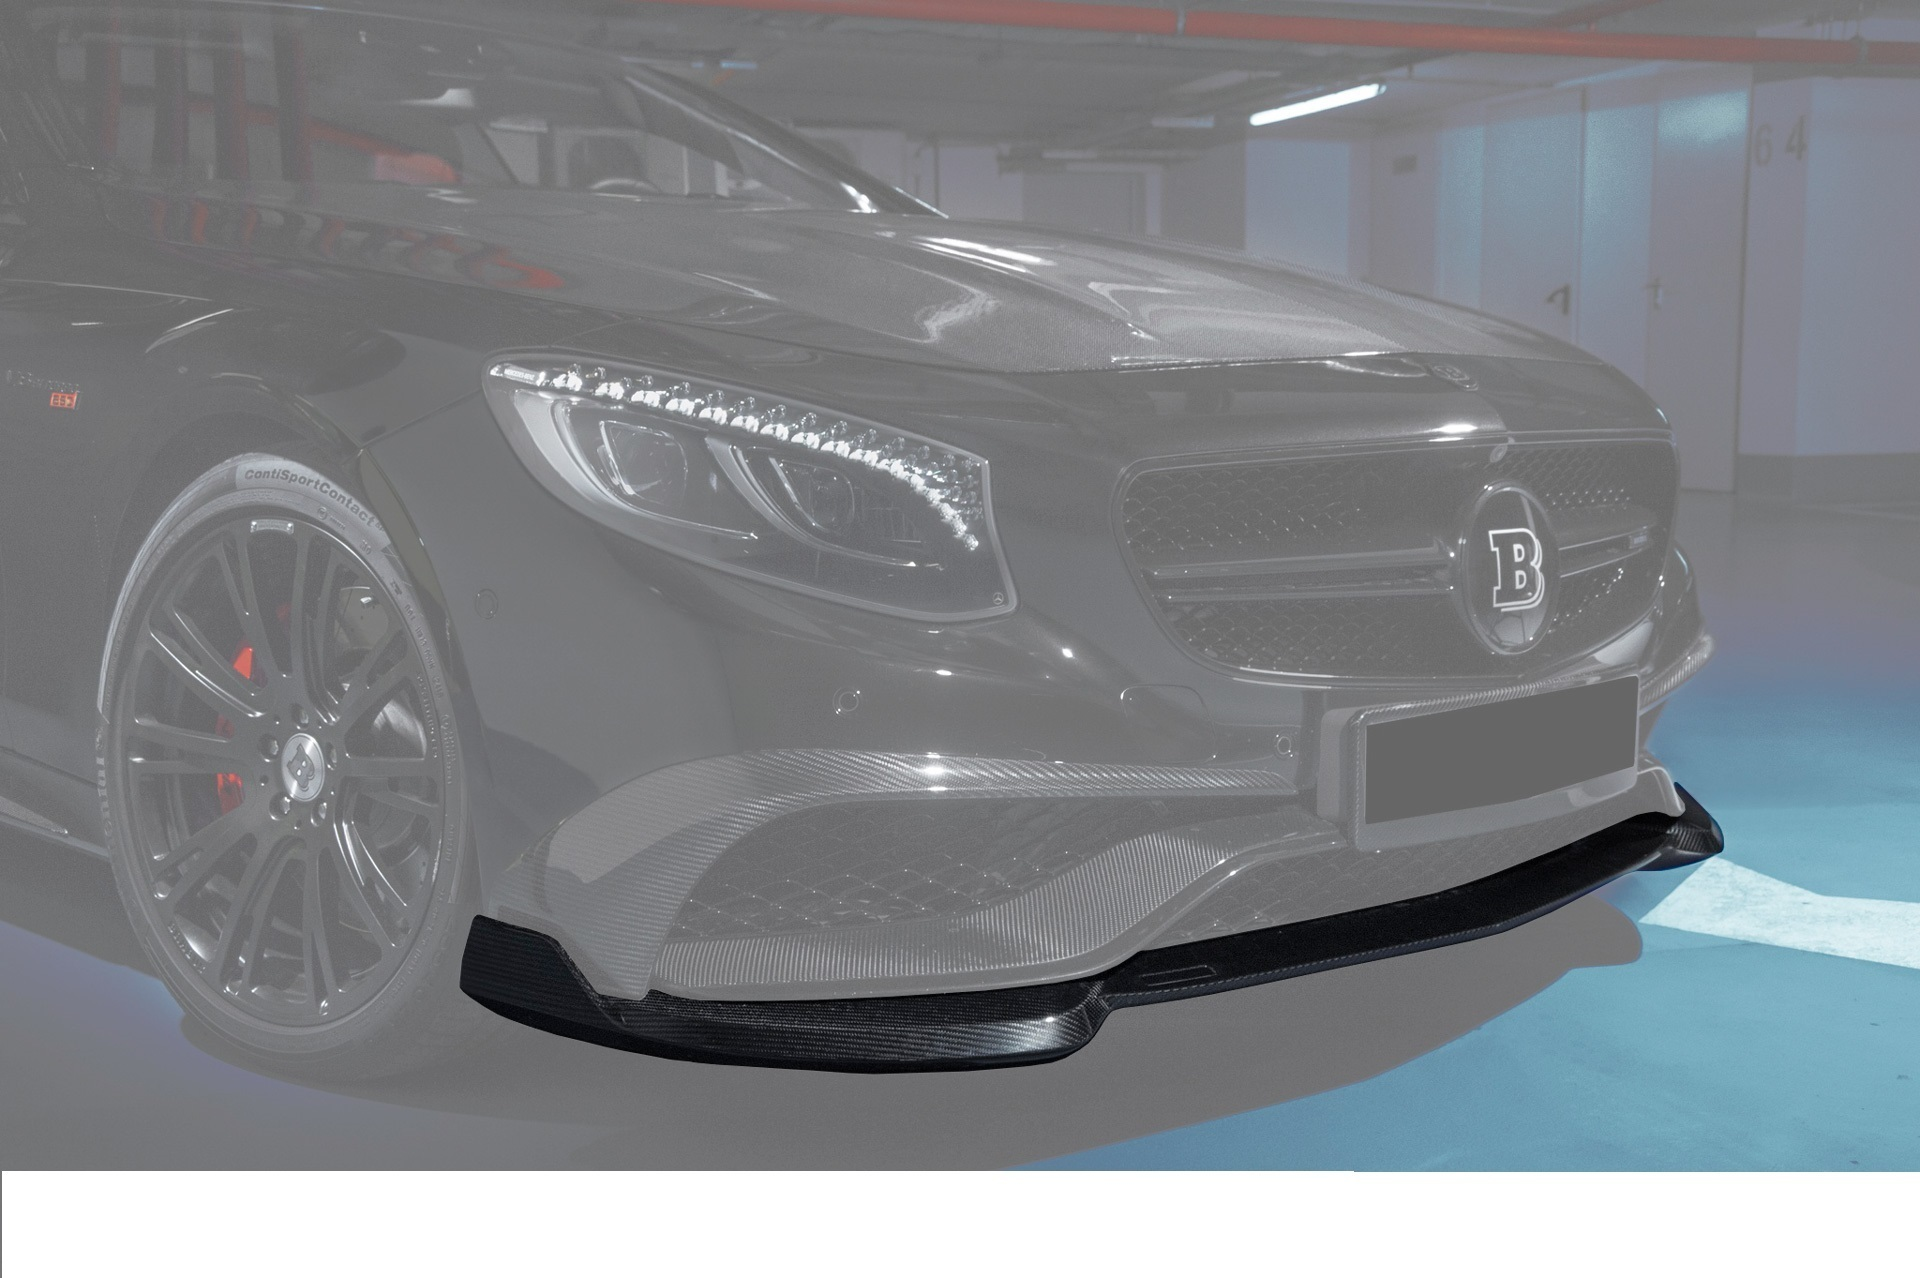 Hodoor Performance Carbon fiber front bumper spoiler 63 AMG Brabus Style (2) for Mercedes S-class coupe C217